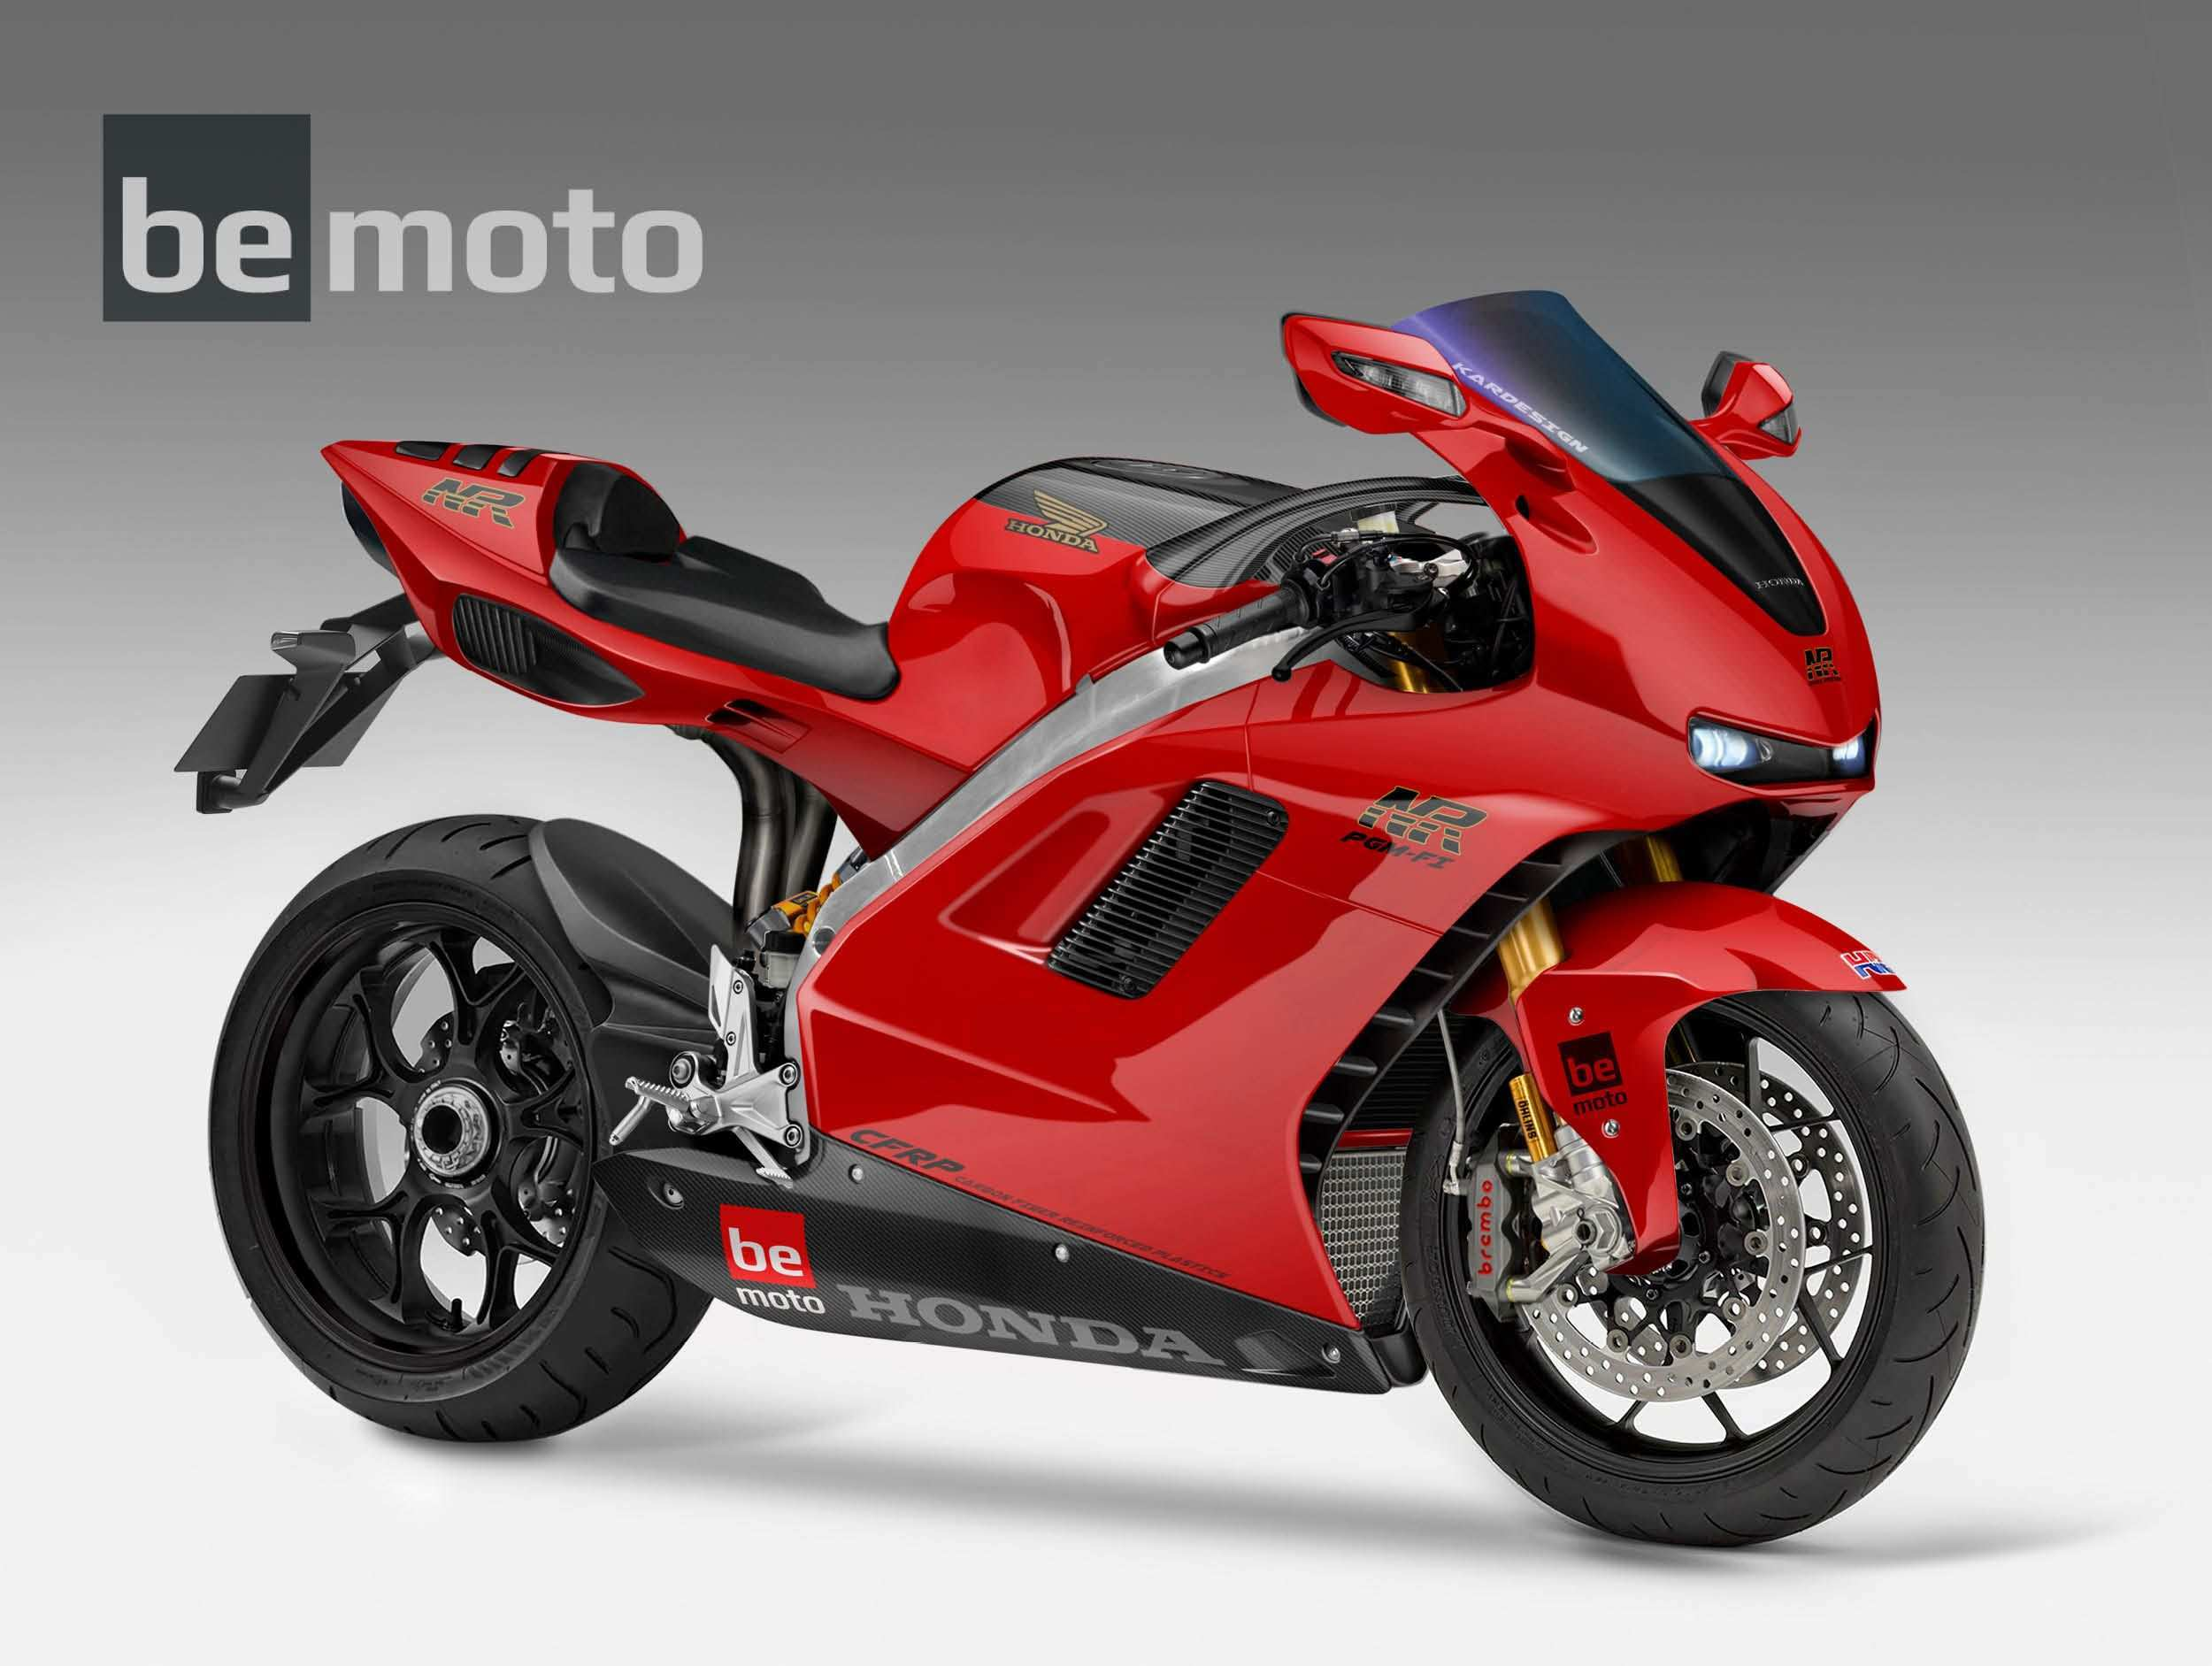 71 Gallery of Honda V4 2020 Images with Honda V4 2020